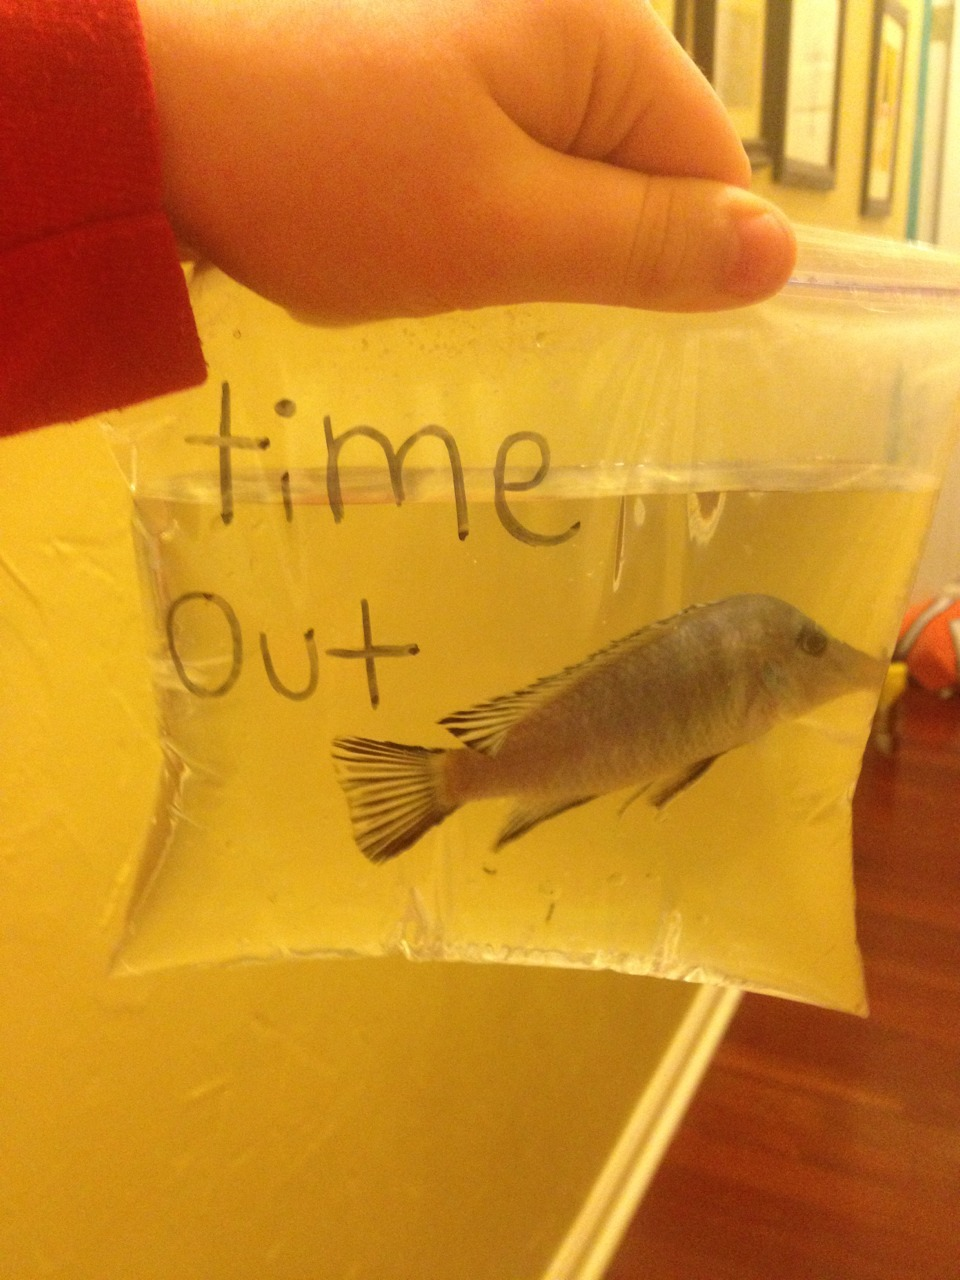 coolestbloginamerica:  I put my fish in time out because he kept trying to eat my other fish.  I hope that little fucker learned his lesson